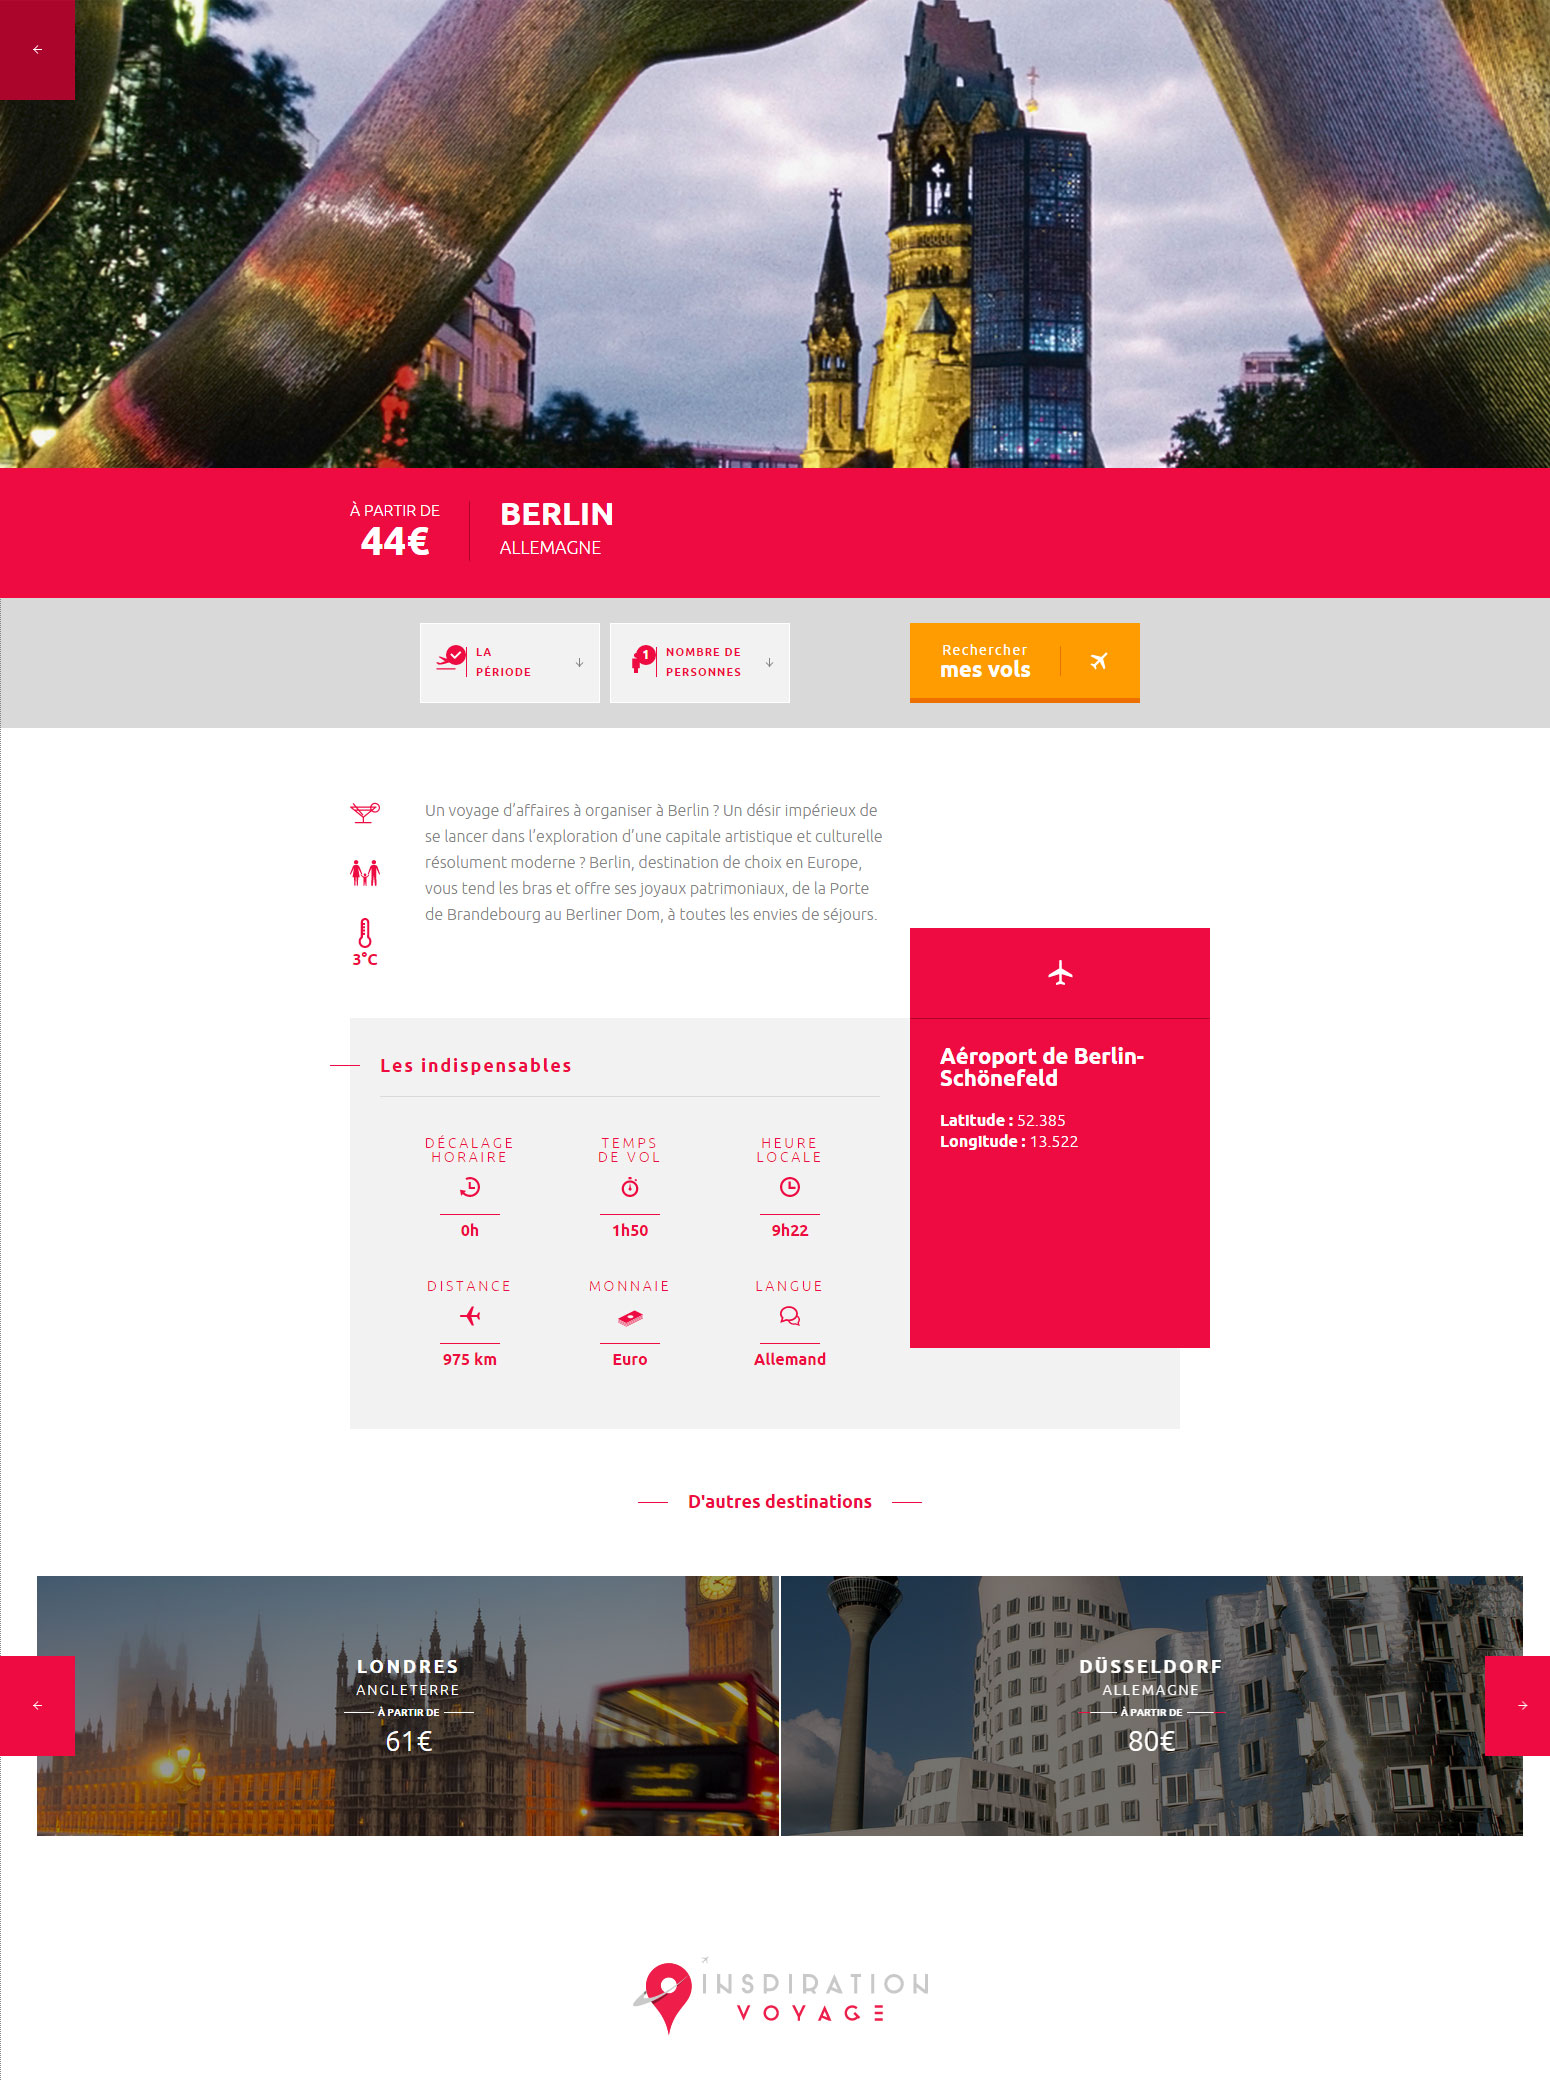 Trip inspiration — Lyon Airport - Website of the Day